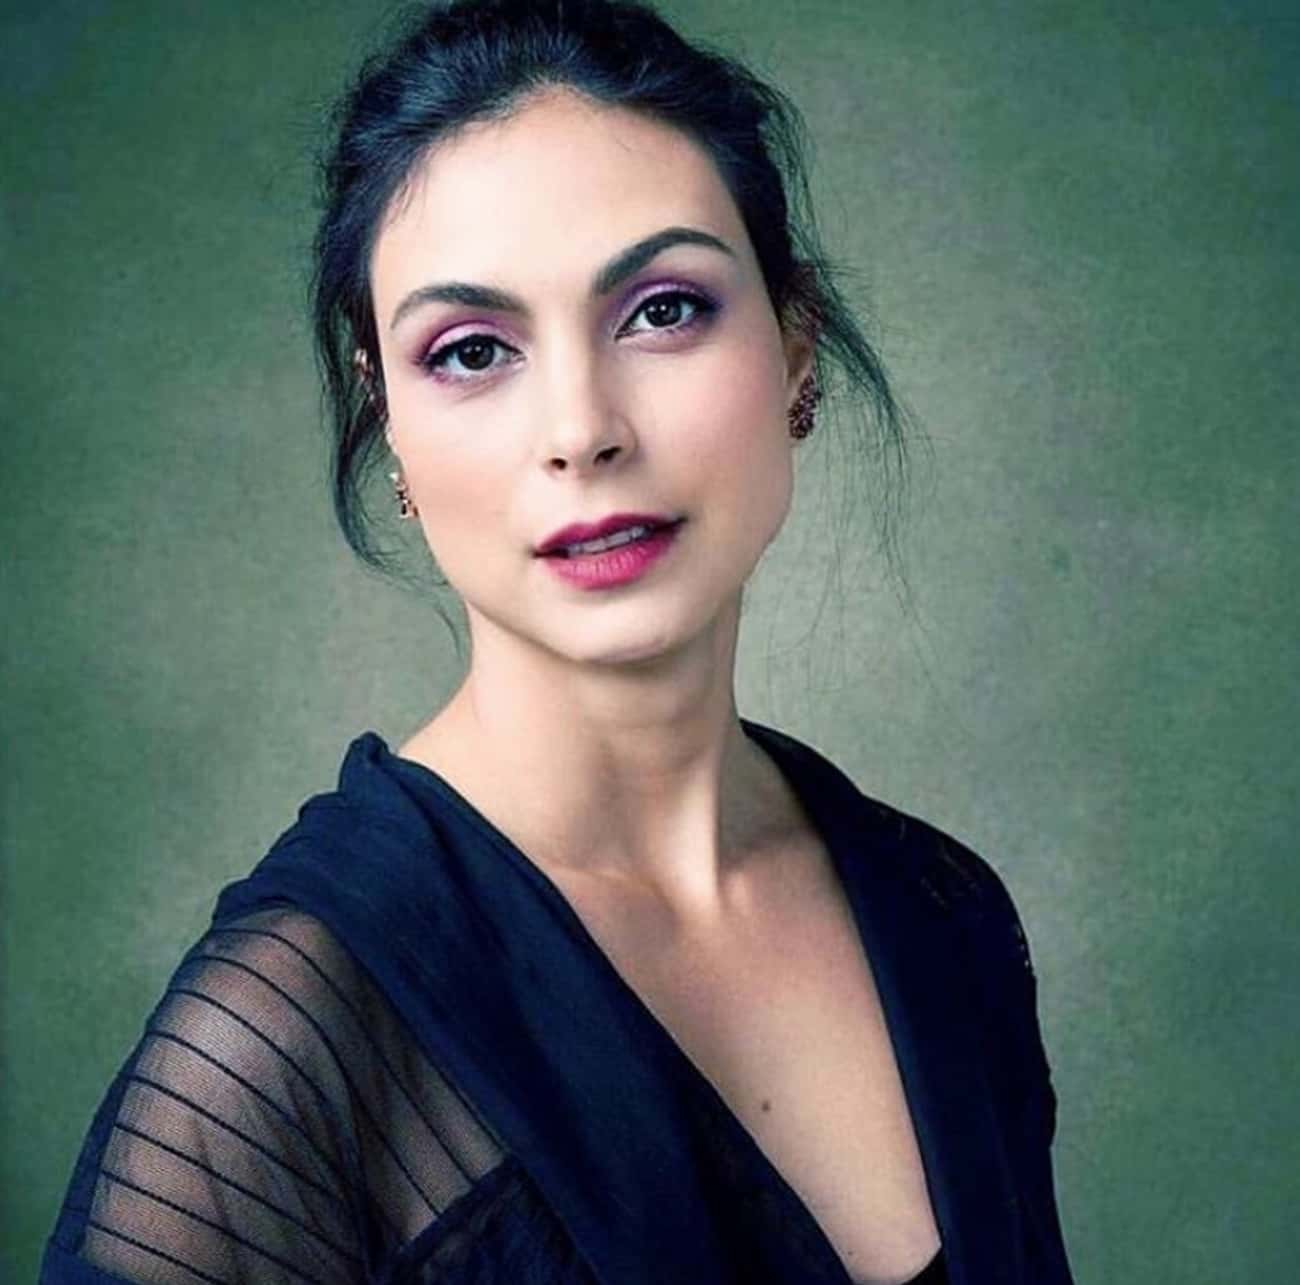 Read More About Morena Baccari is listed (or ranked) 3 on the list The Two Men Who Stole Morena Baccarin's Heart